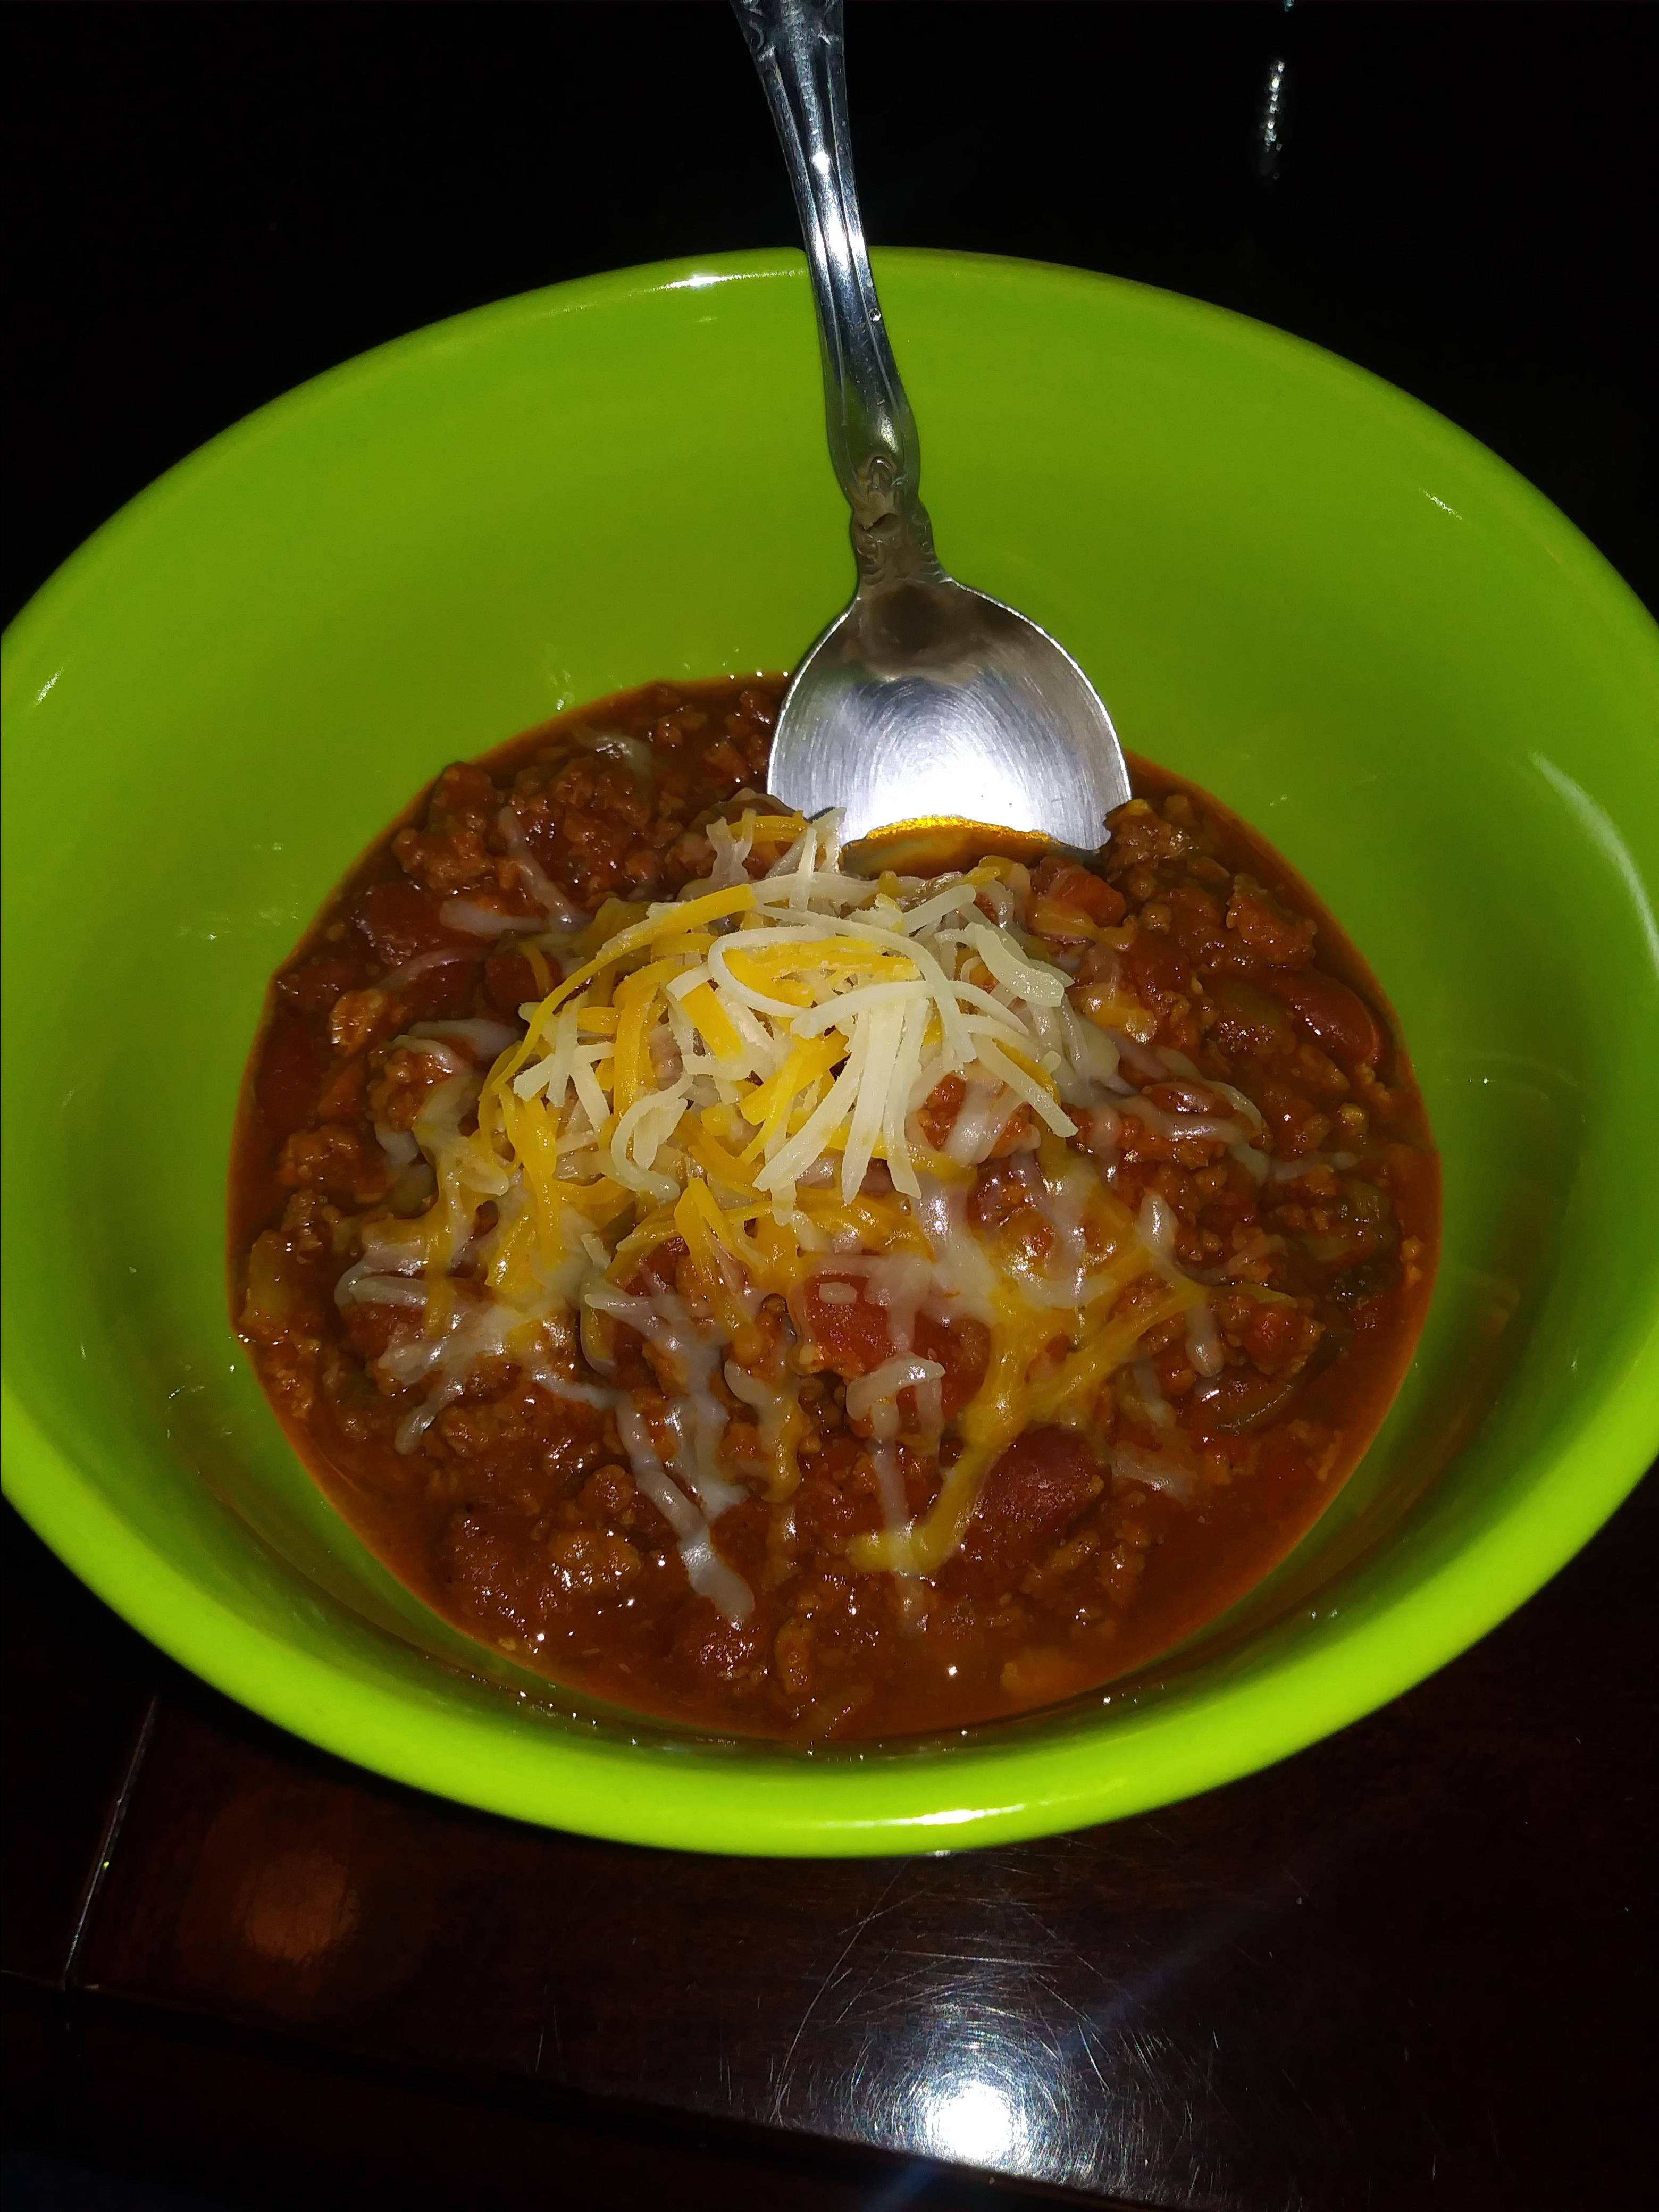 Spicy Slow-Cooked Beanless Chili